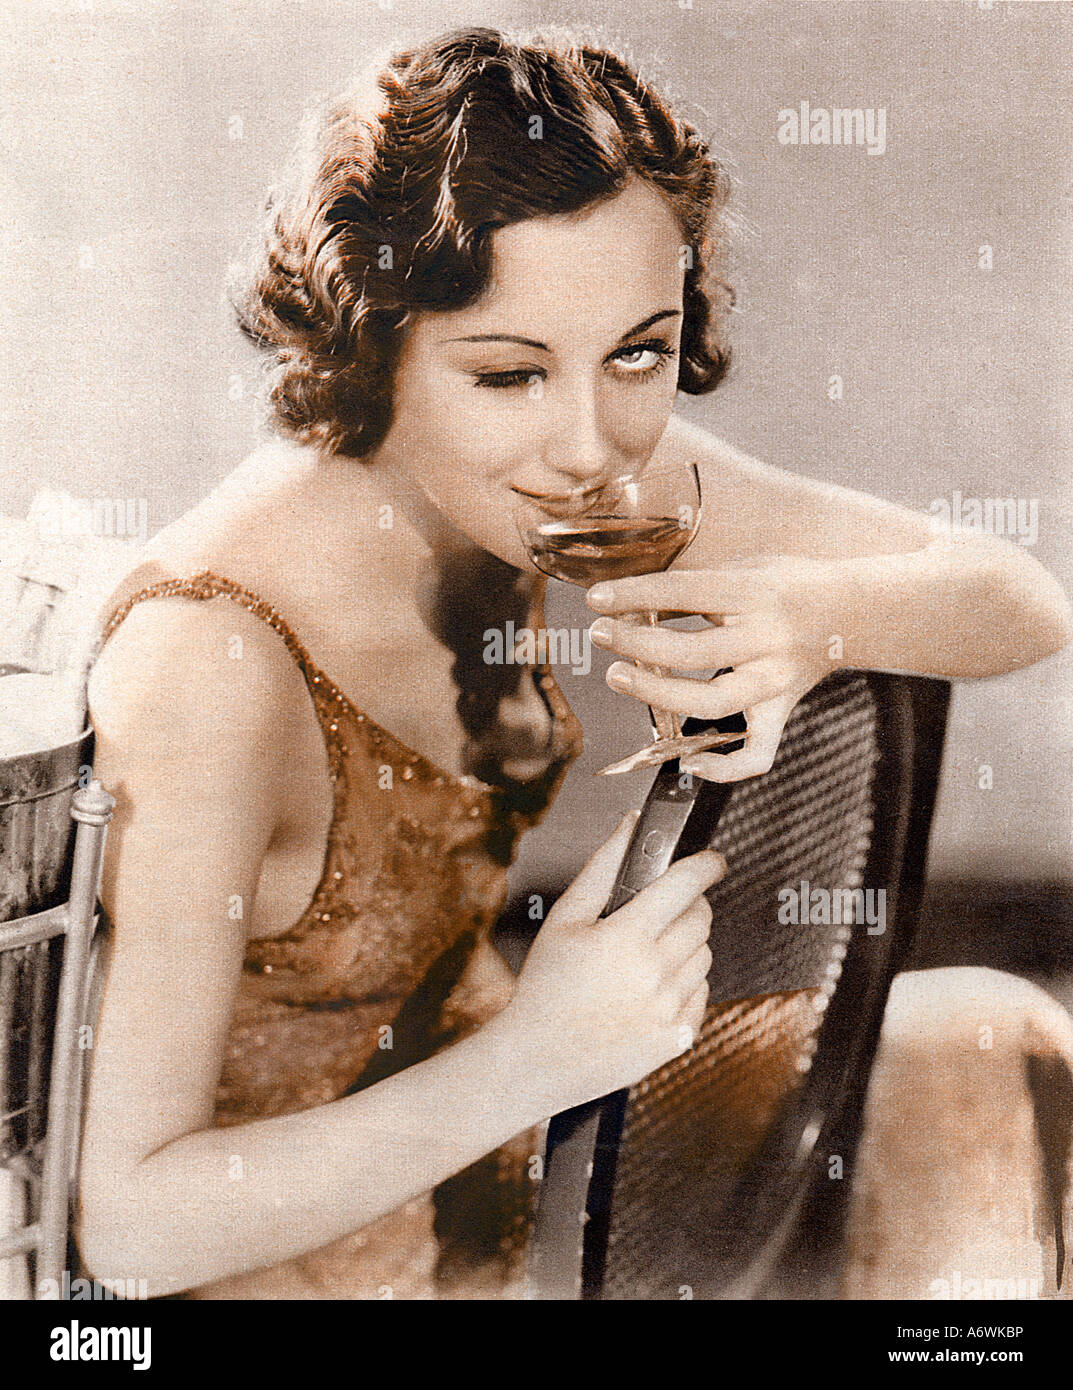 Champagne Wink 1932 photo from the English magazine London Life of a lady winking invitingly while sipping champagne - Stock Image